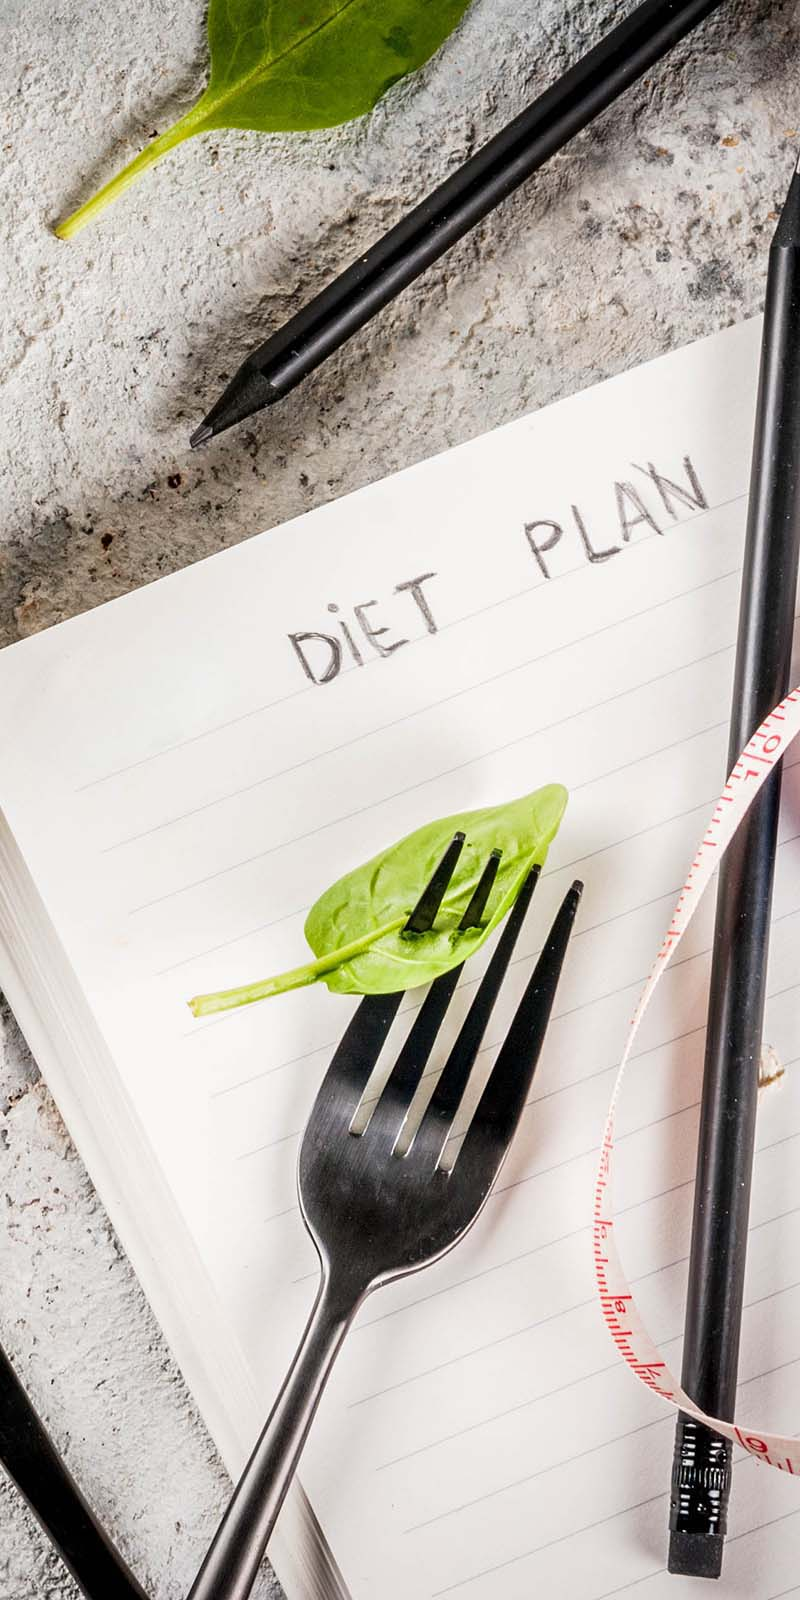 Image of a journal with the words Diet Plan on the page. The book is laying on a cement along with a pen, measure tape and a fork that is piercing a leaf of lettuce